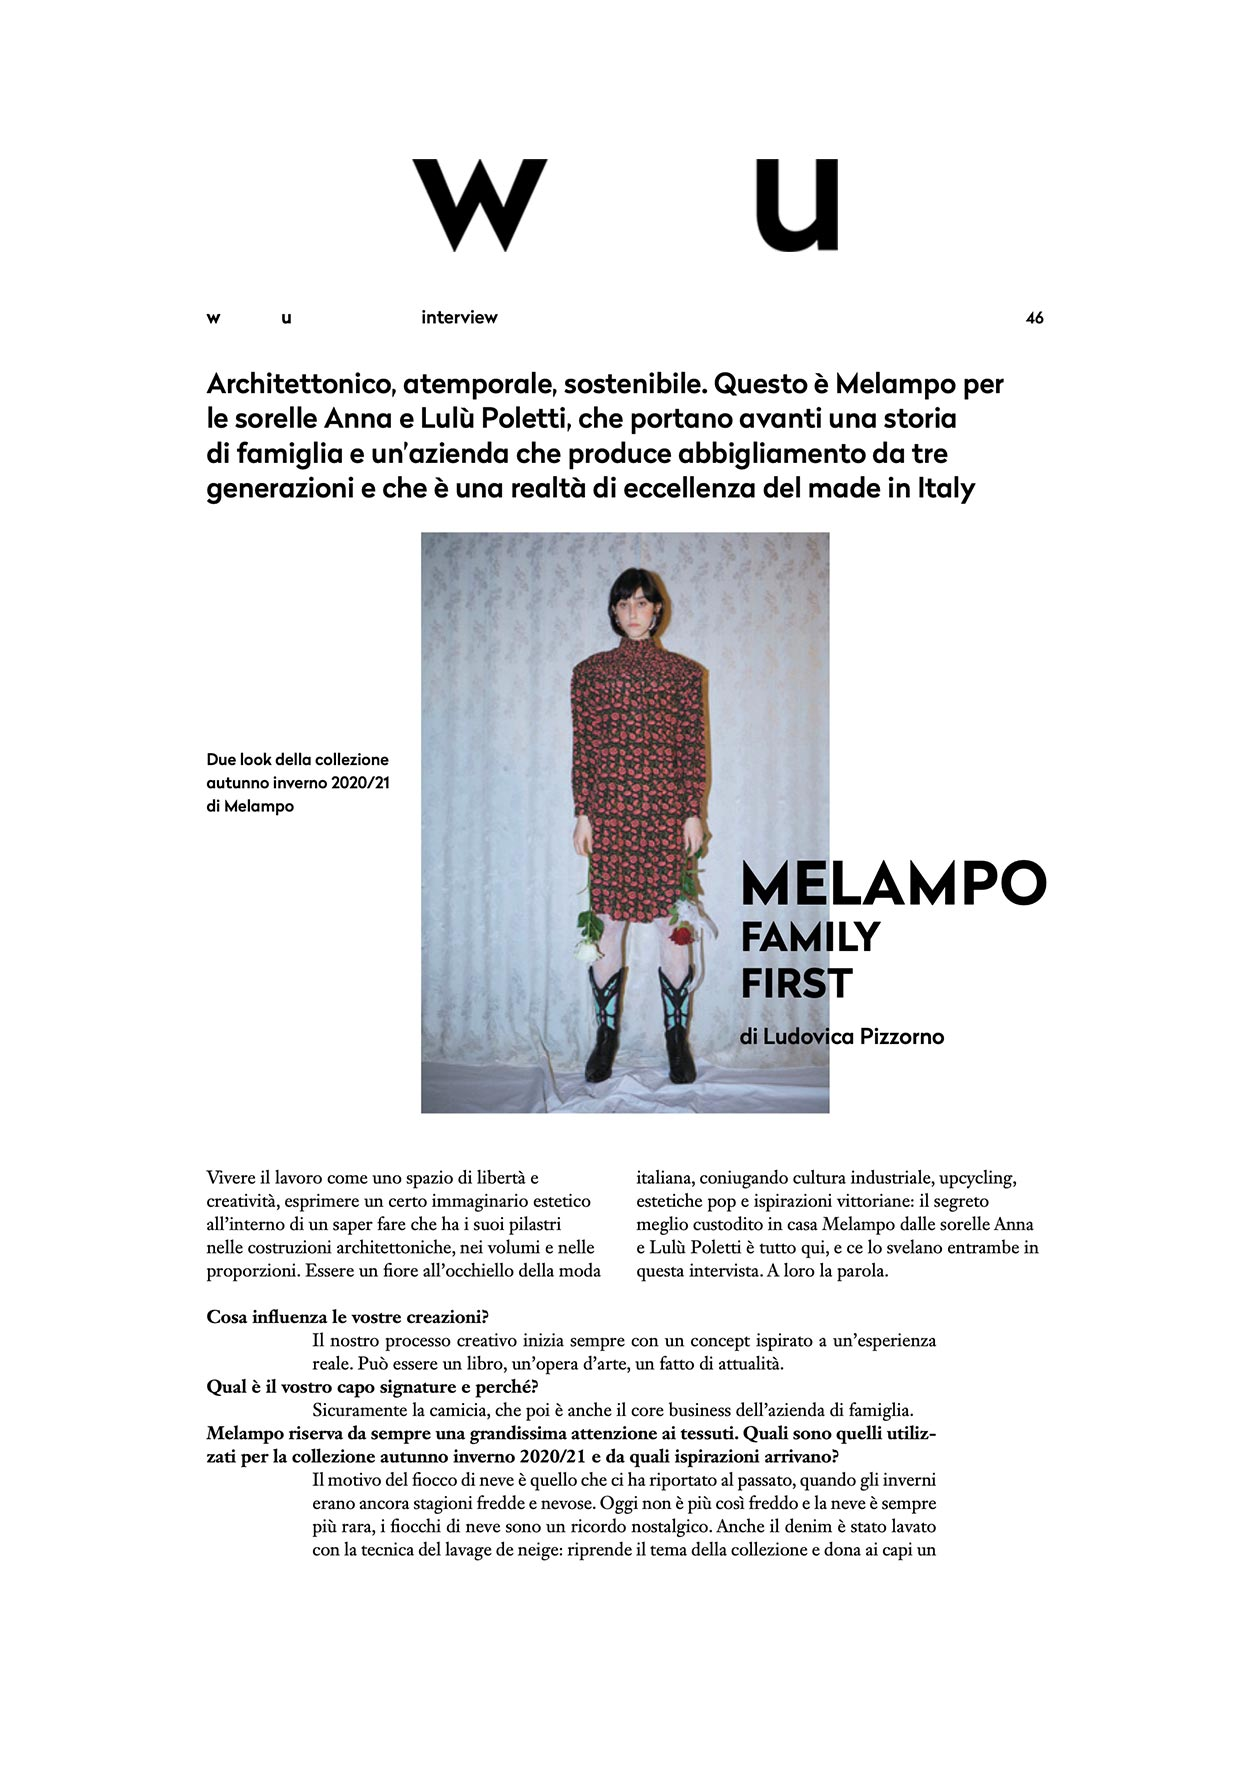 melampo interview on wu magazine - photo 1